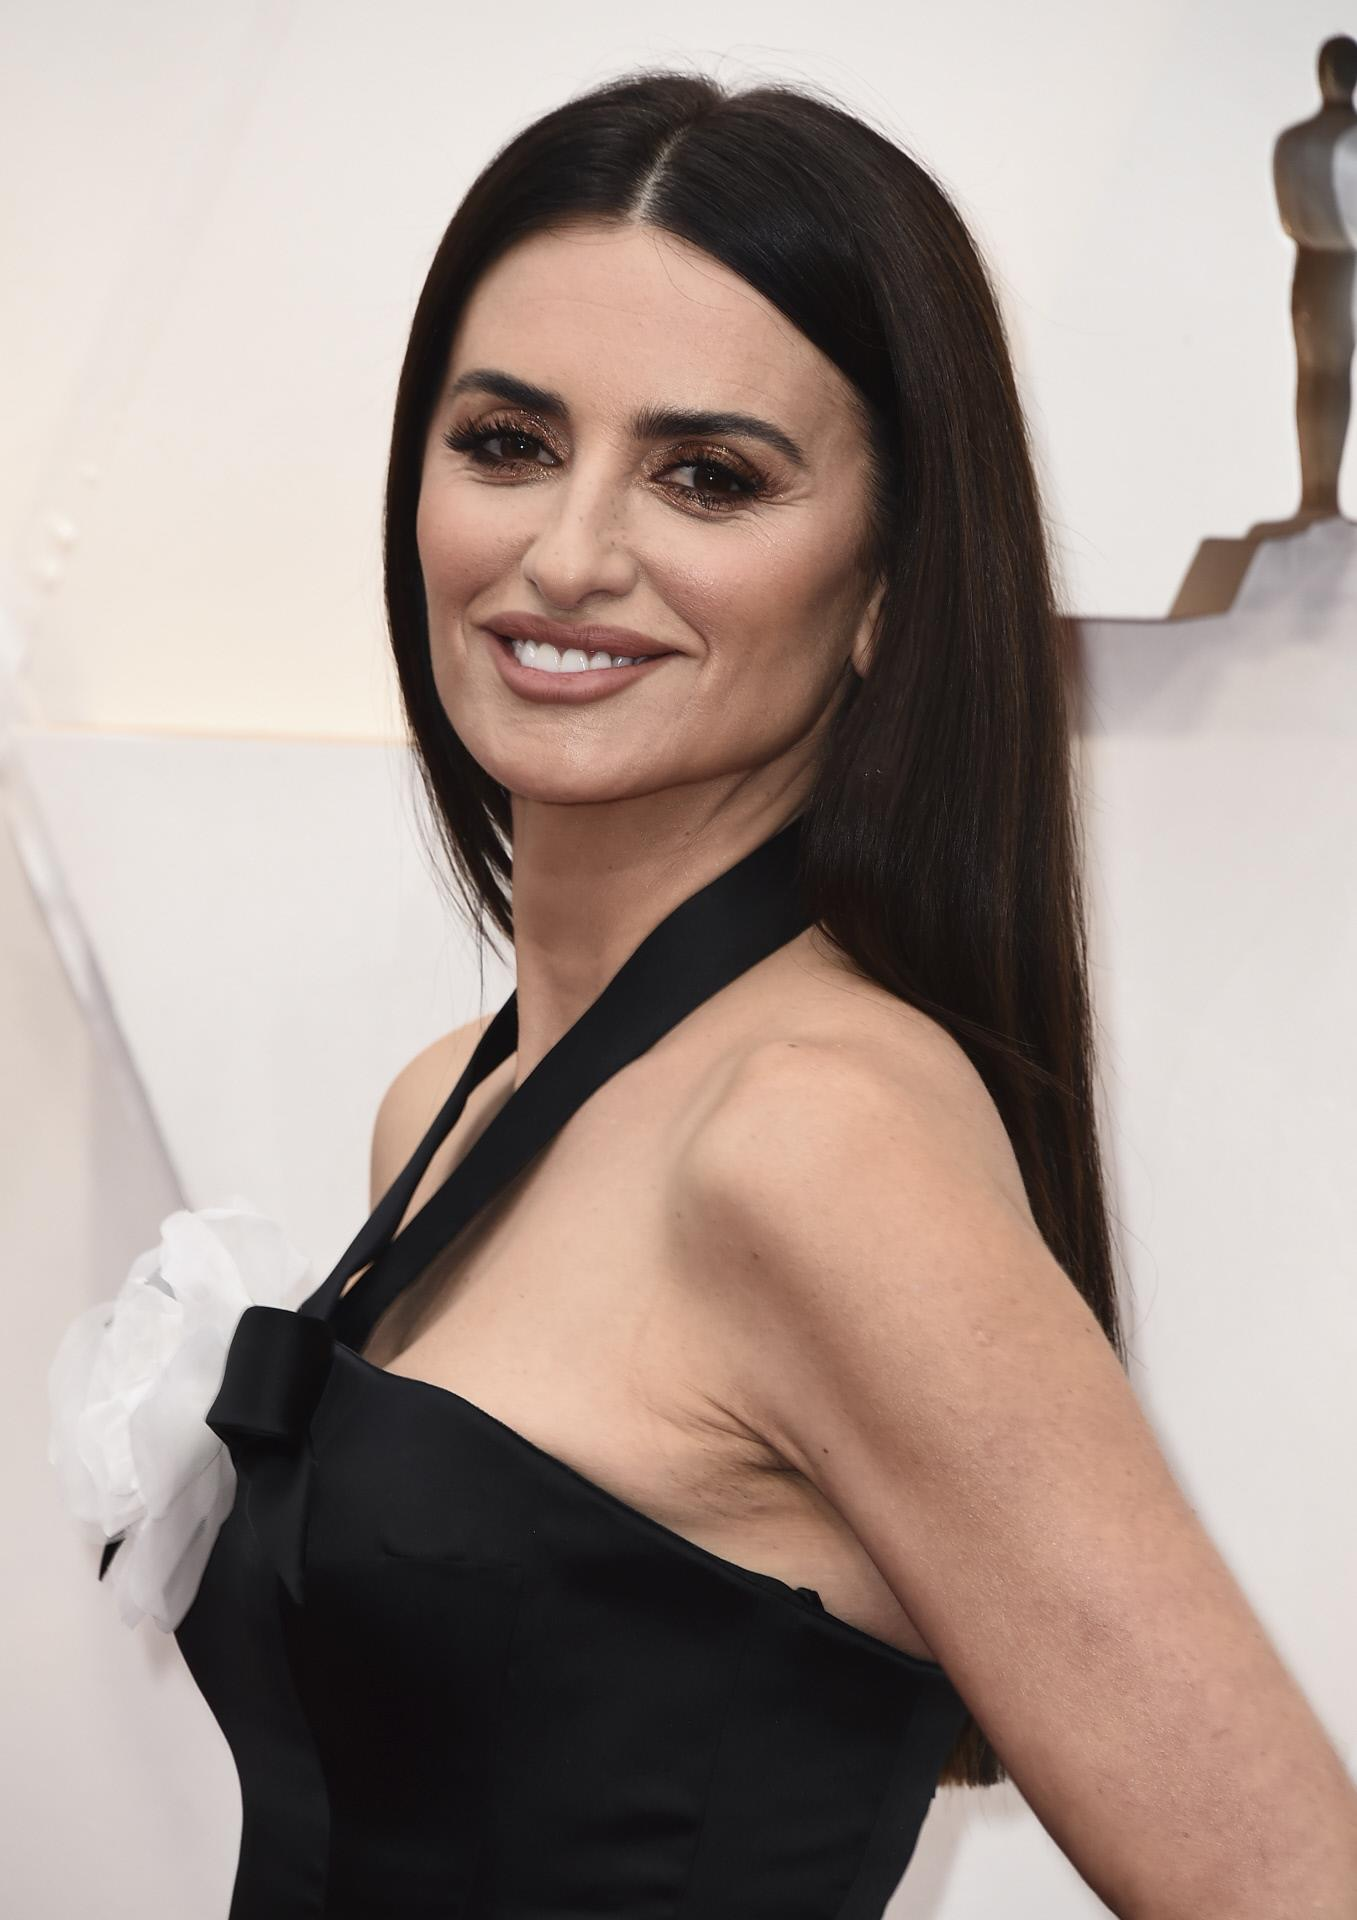 DL u449539 477. Penélope Cruz